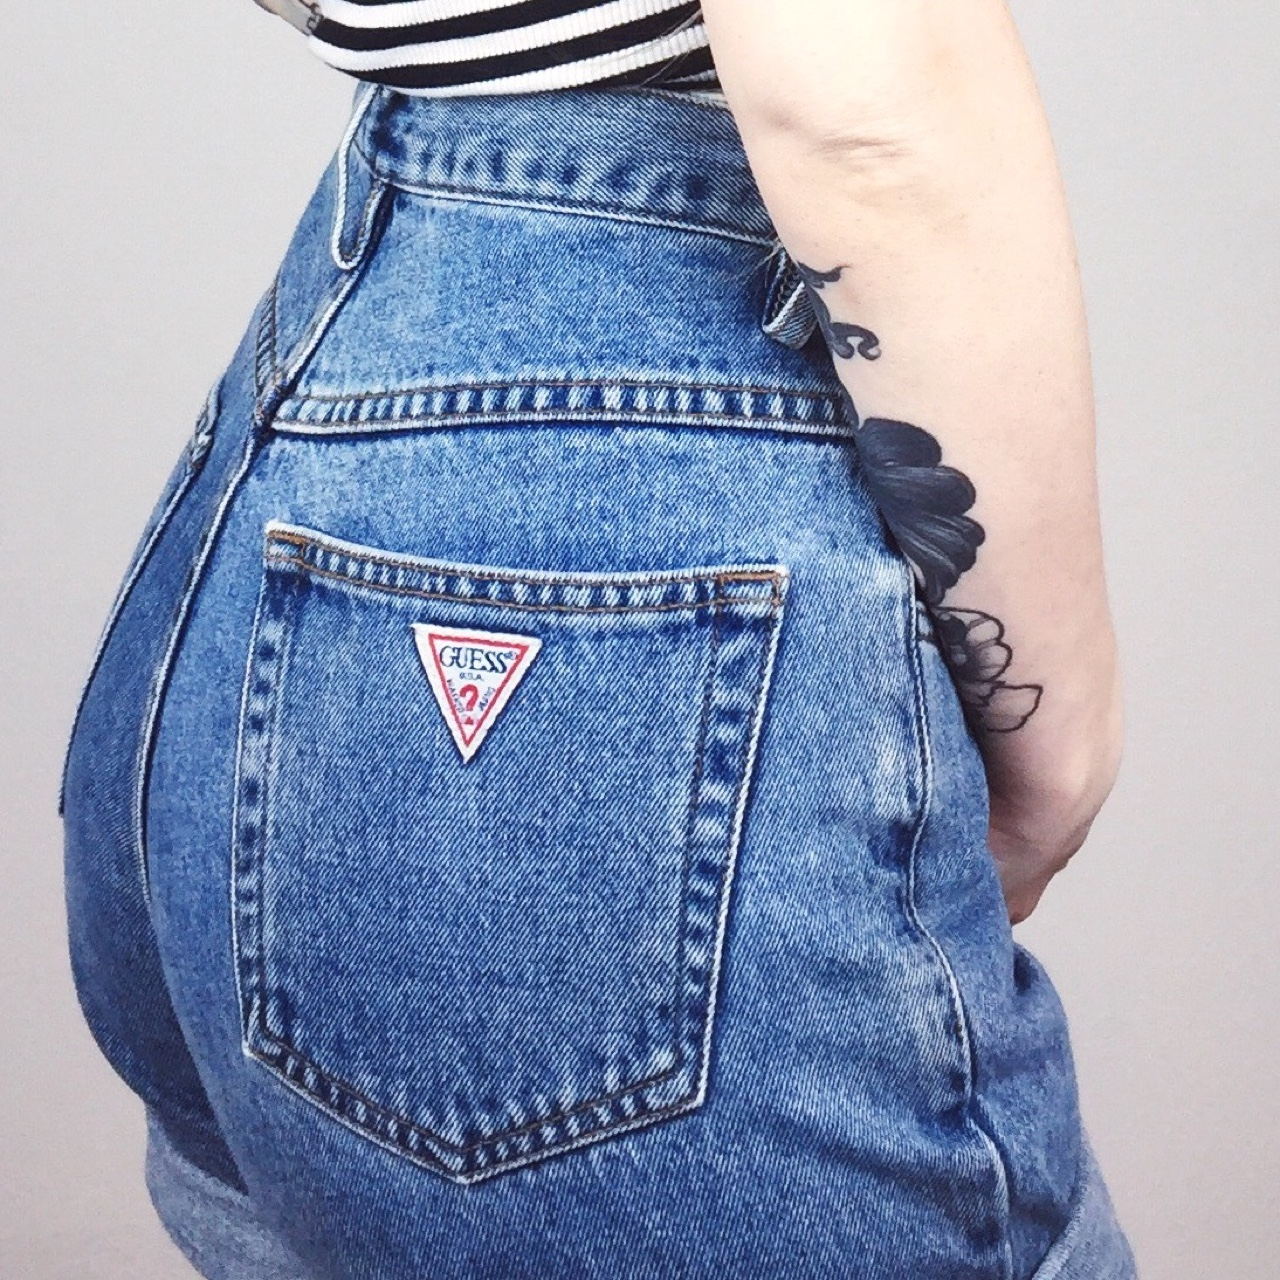 quality design 33284 f52e3 PERFECT FIT! Vintage Guess Jeans high waisted denim ...